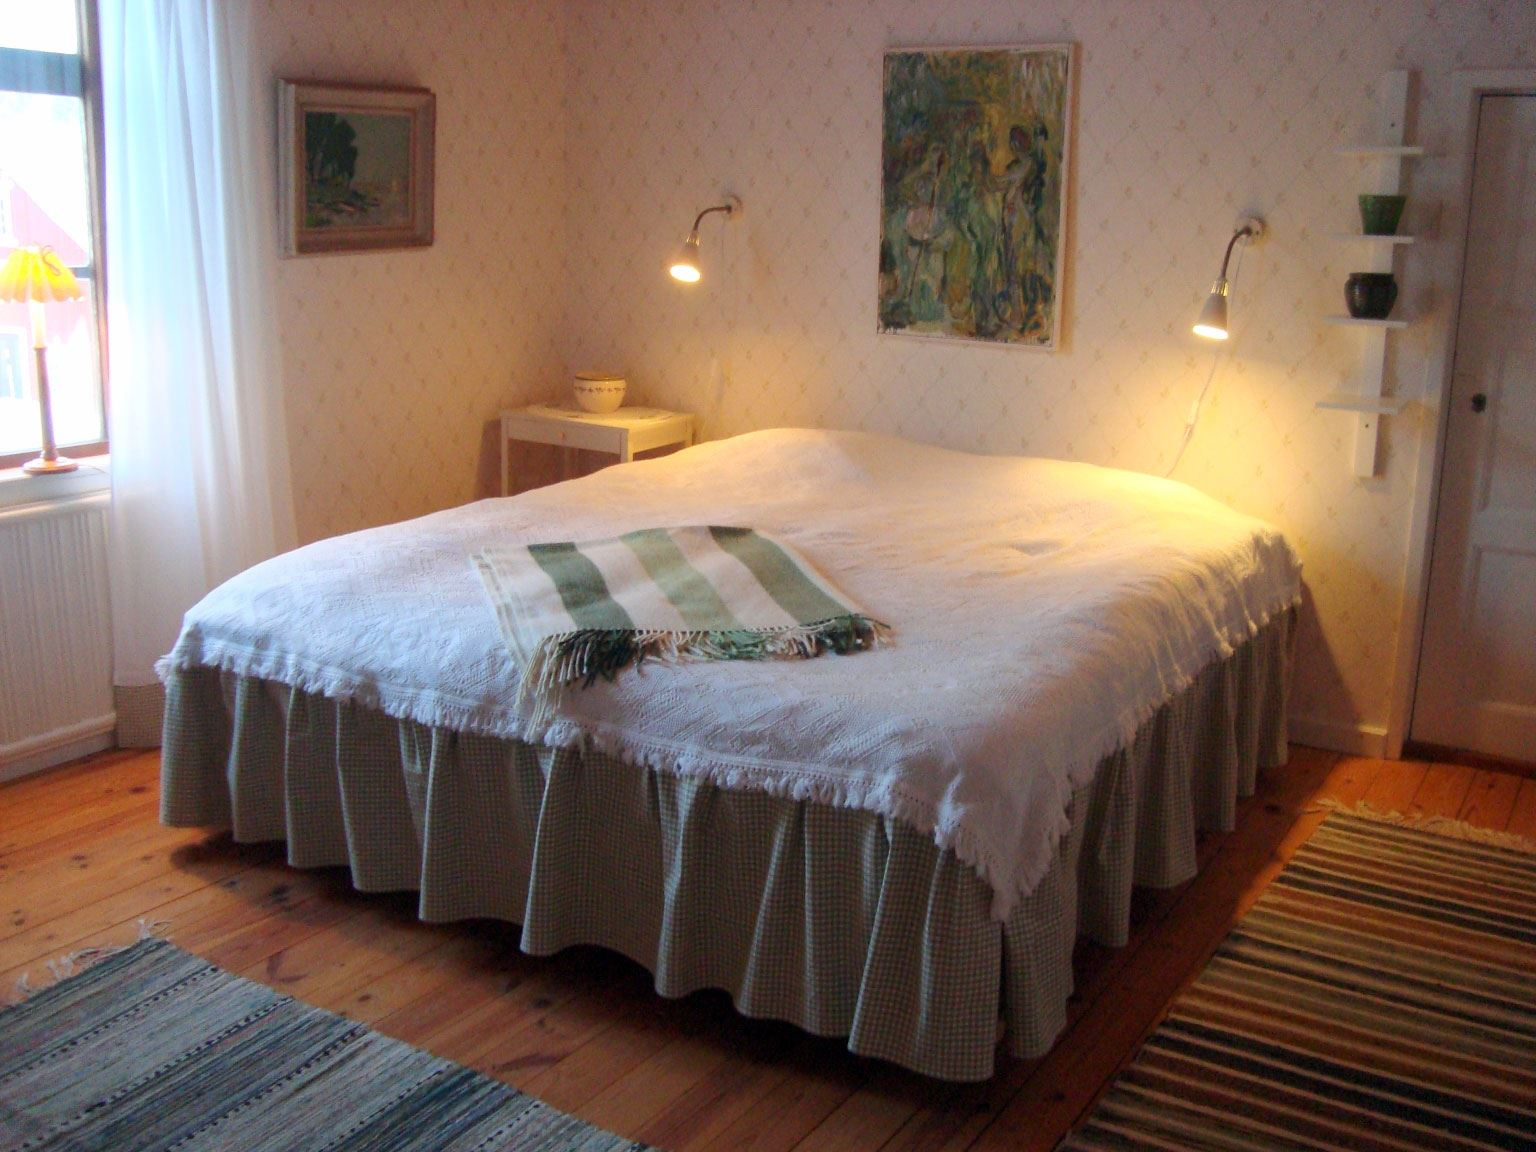 © Bed & Breakfast i Farstorp, Bed & Breakfast in Farstorp